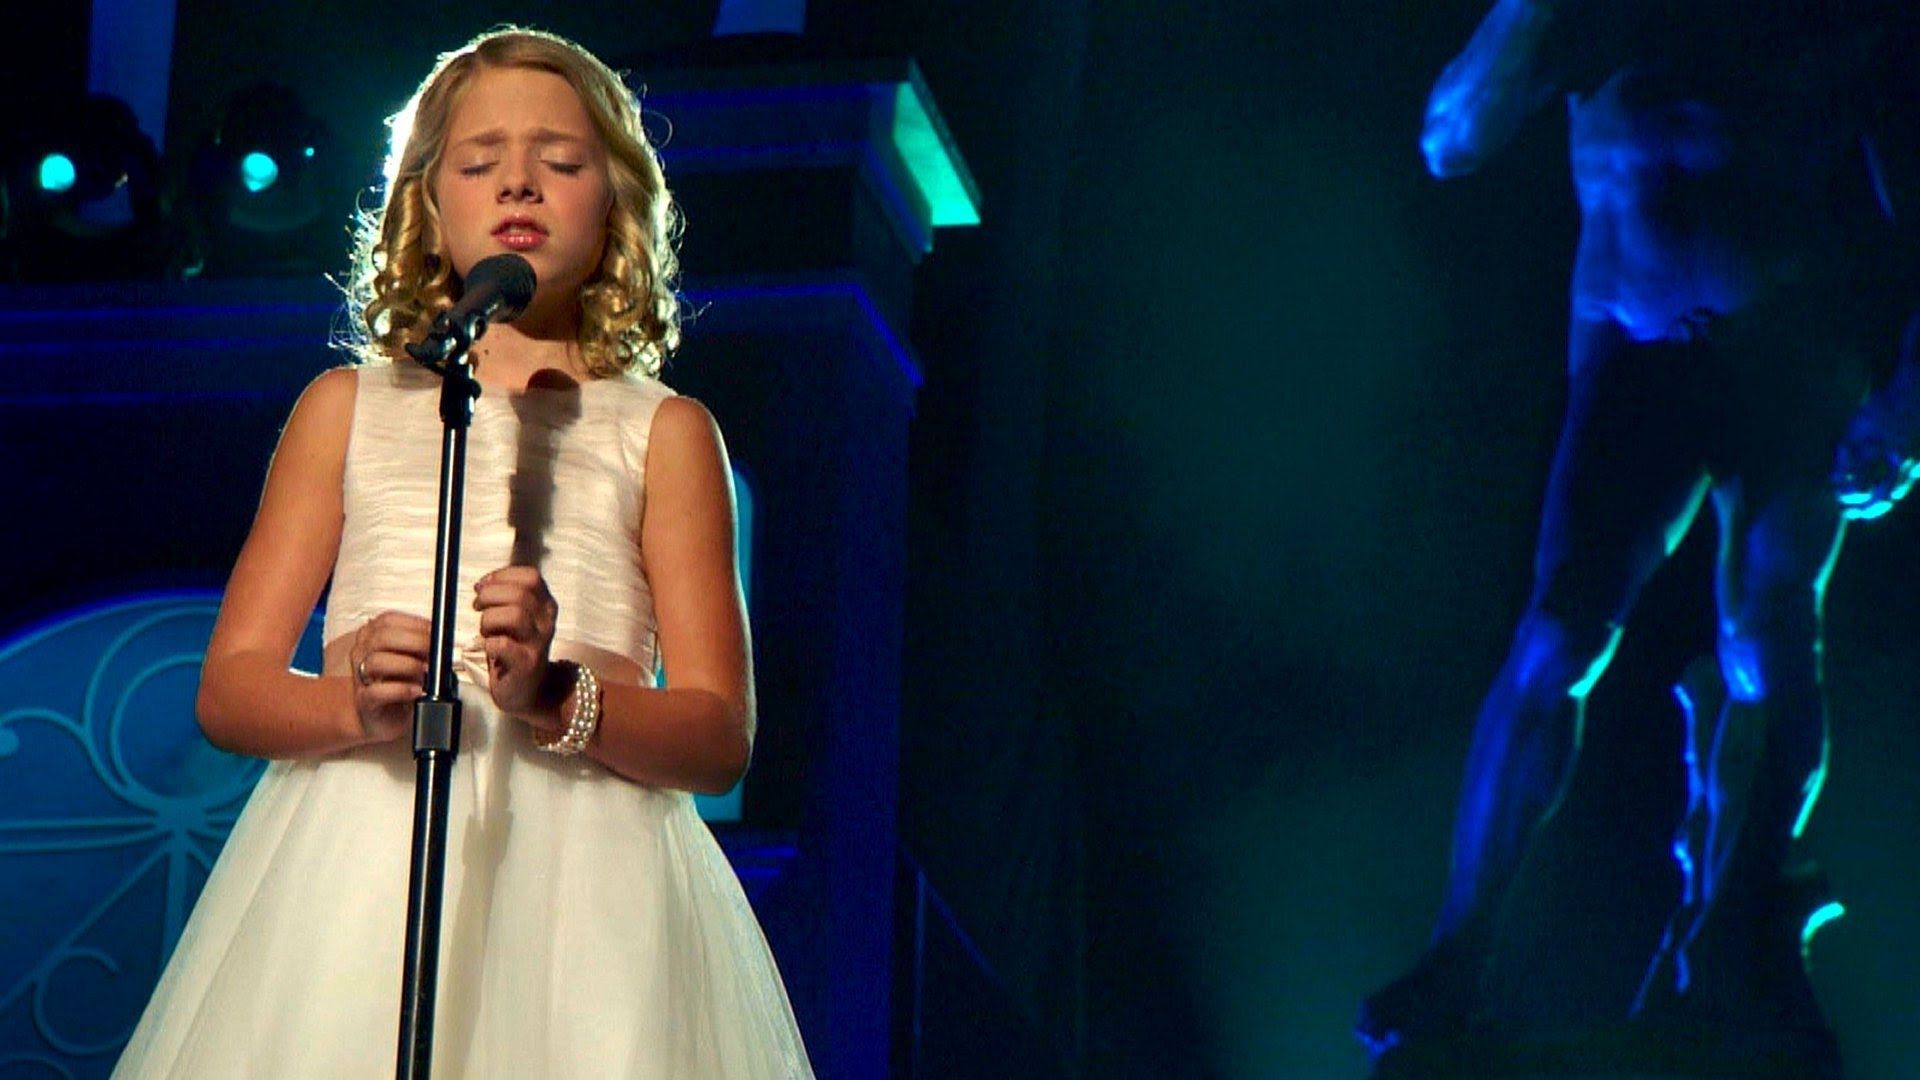 Jackie evancho imaginer feat conrad tao hd music songs hexwebz Gallery